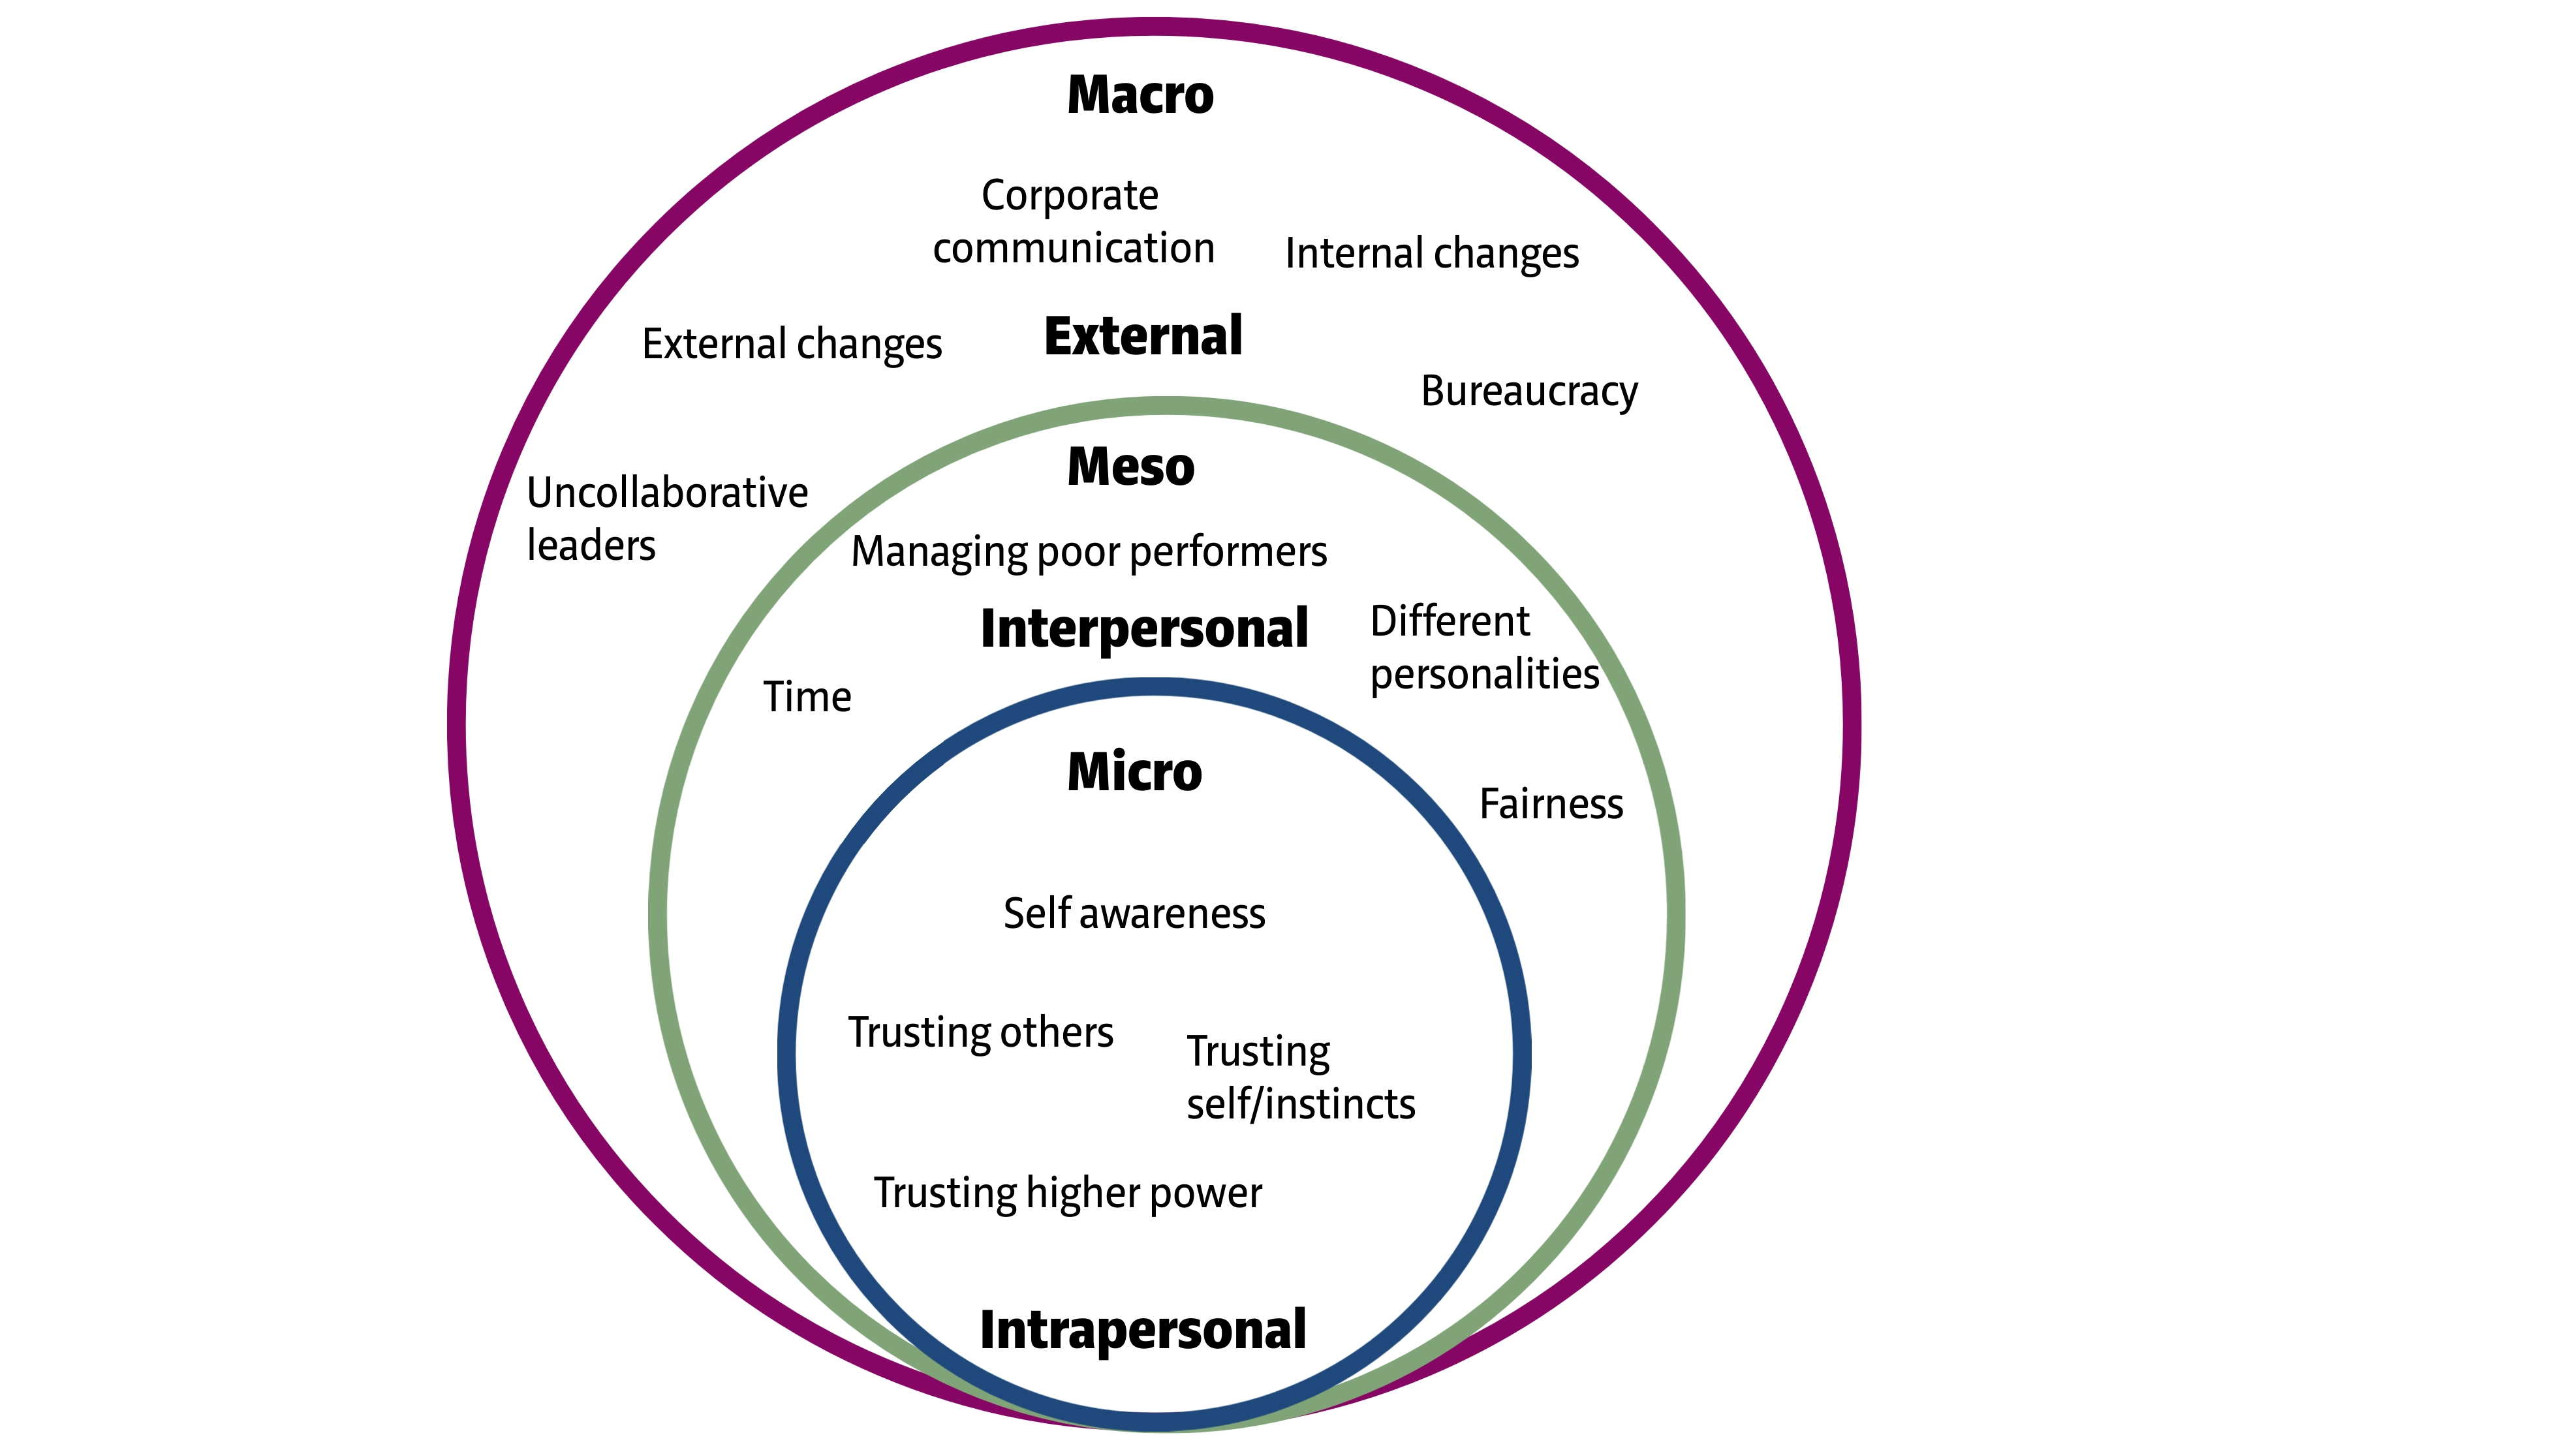 3-Types-of-Forces-that-Impact-Trust (2)